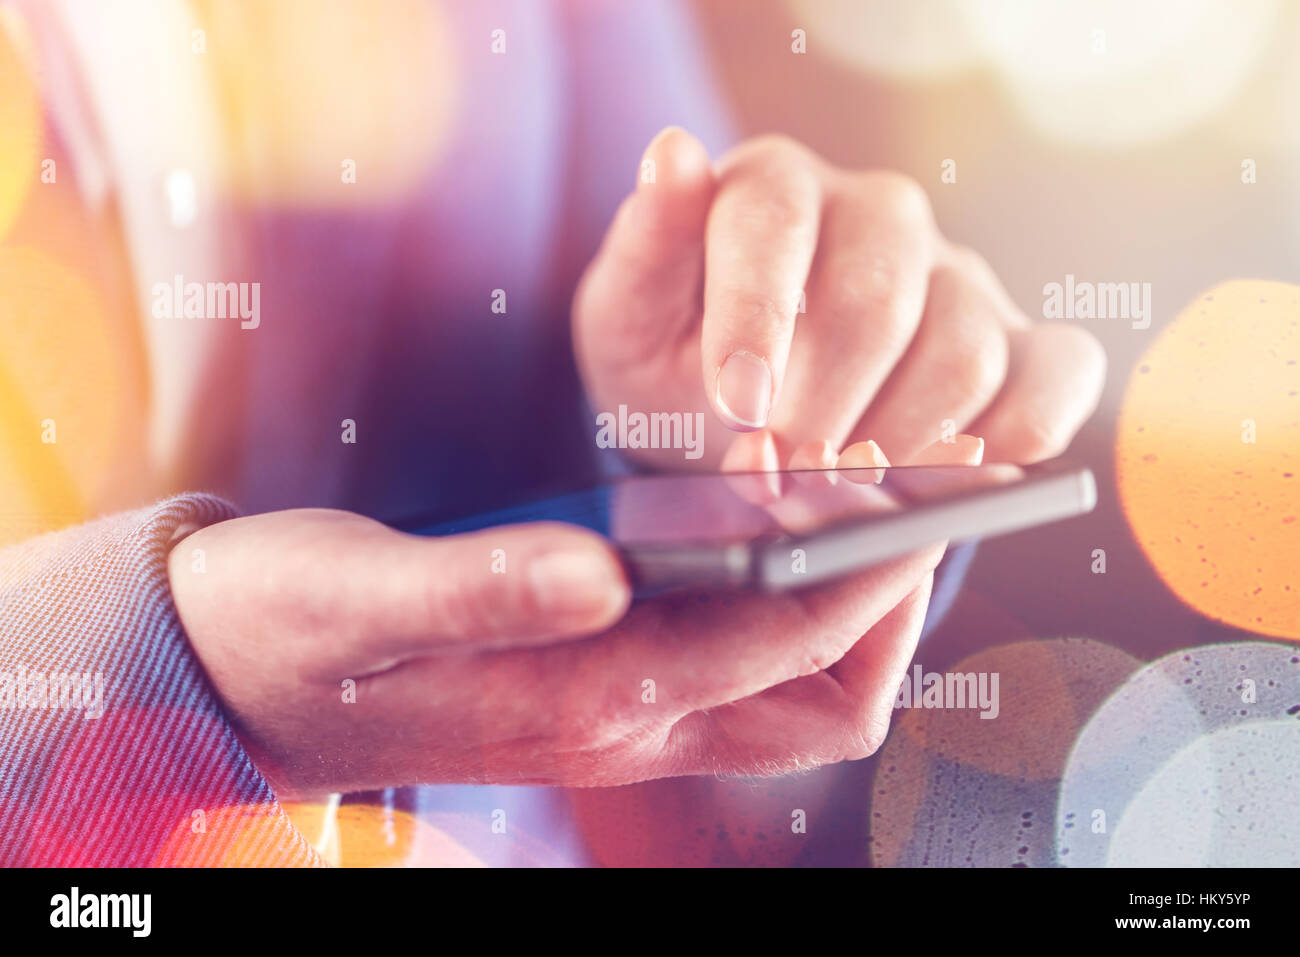 Female hands with mobile phone, finger on touchscreen - Stock Image